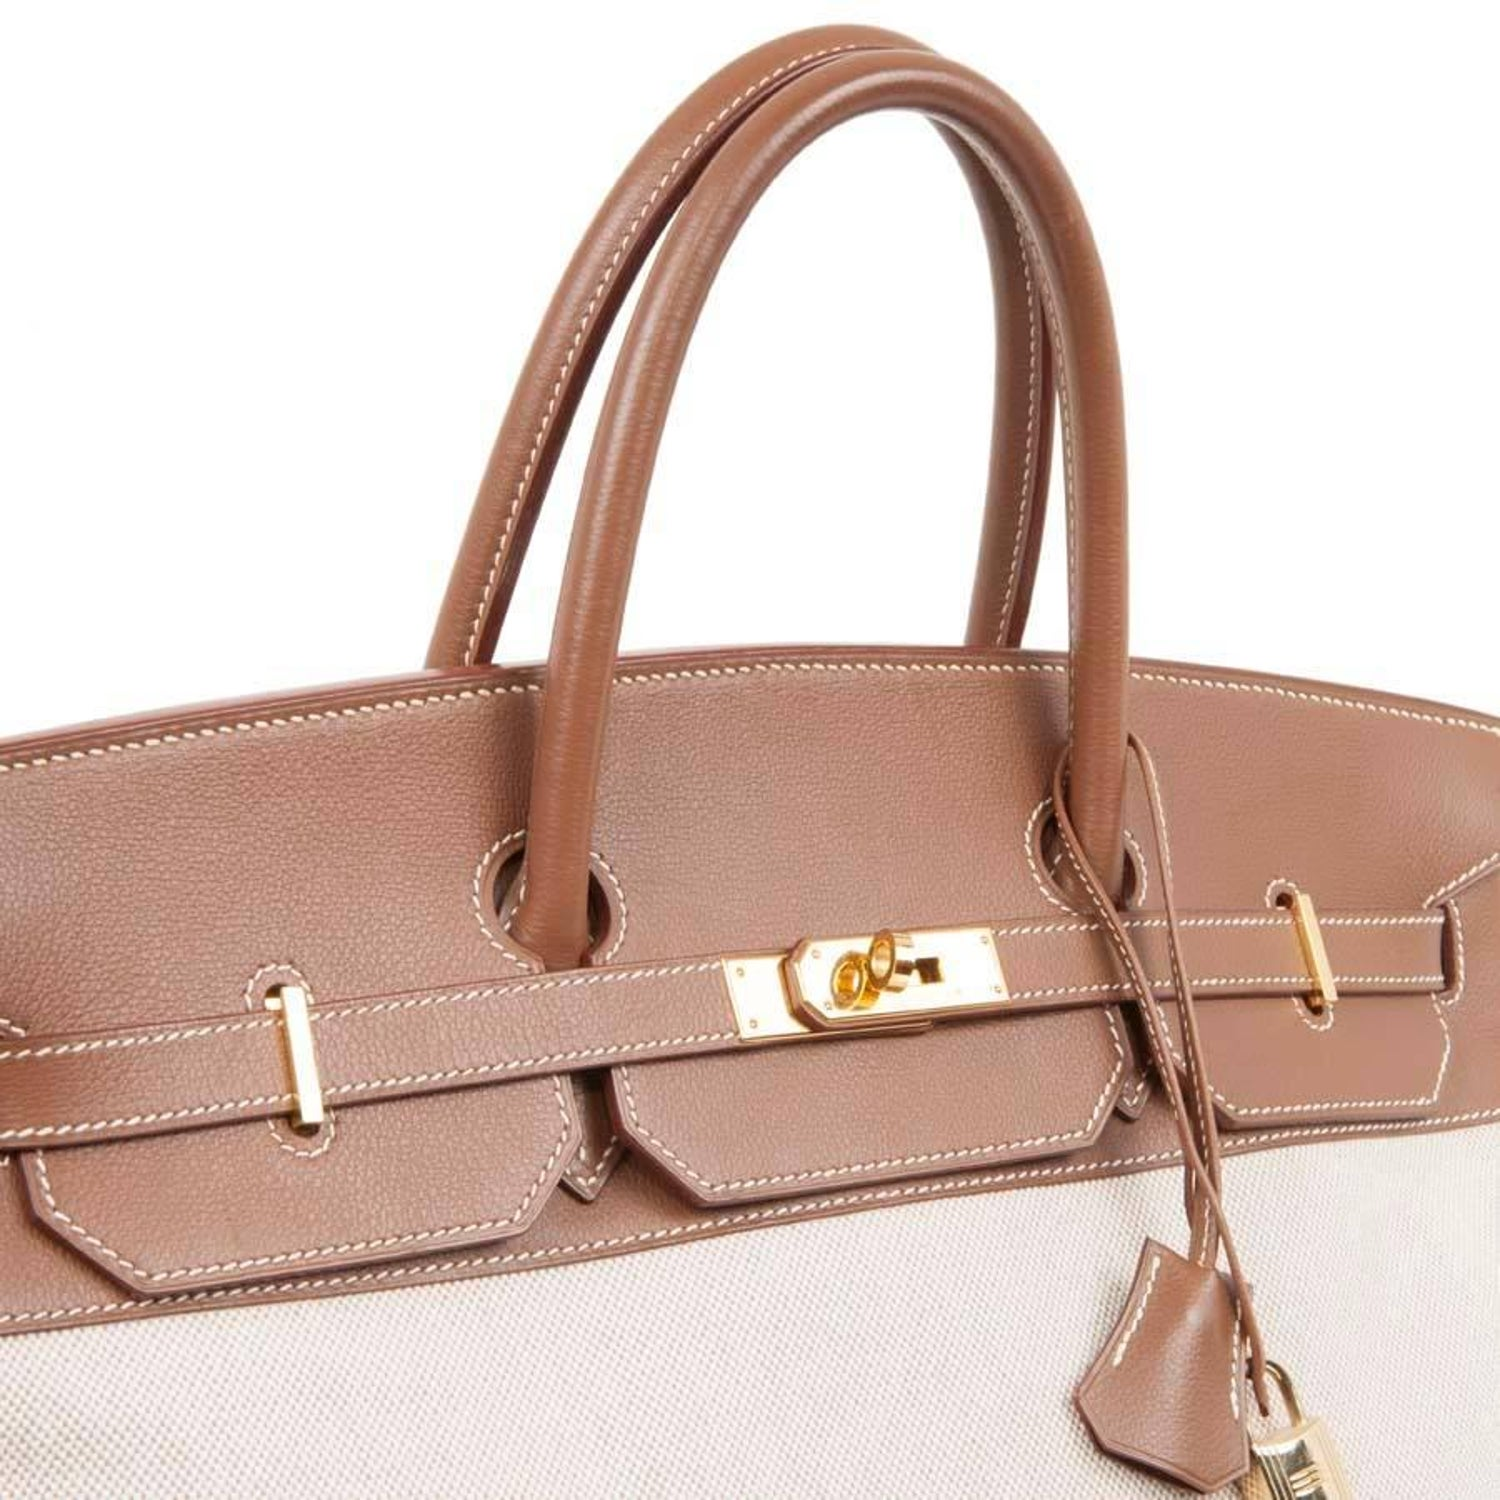 HERMES  Birkin  40 Bag in Ecru Canvas and Gold Epsom Calf Leather For Sale  at 1stdibs 288414cdf9b34